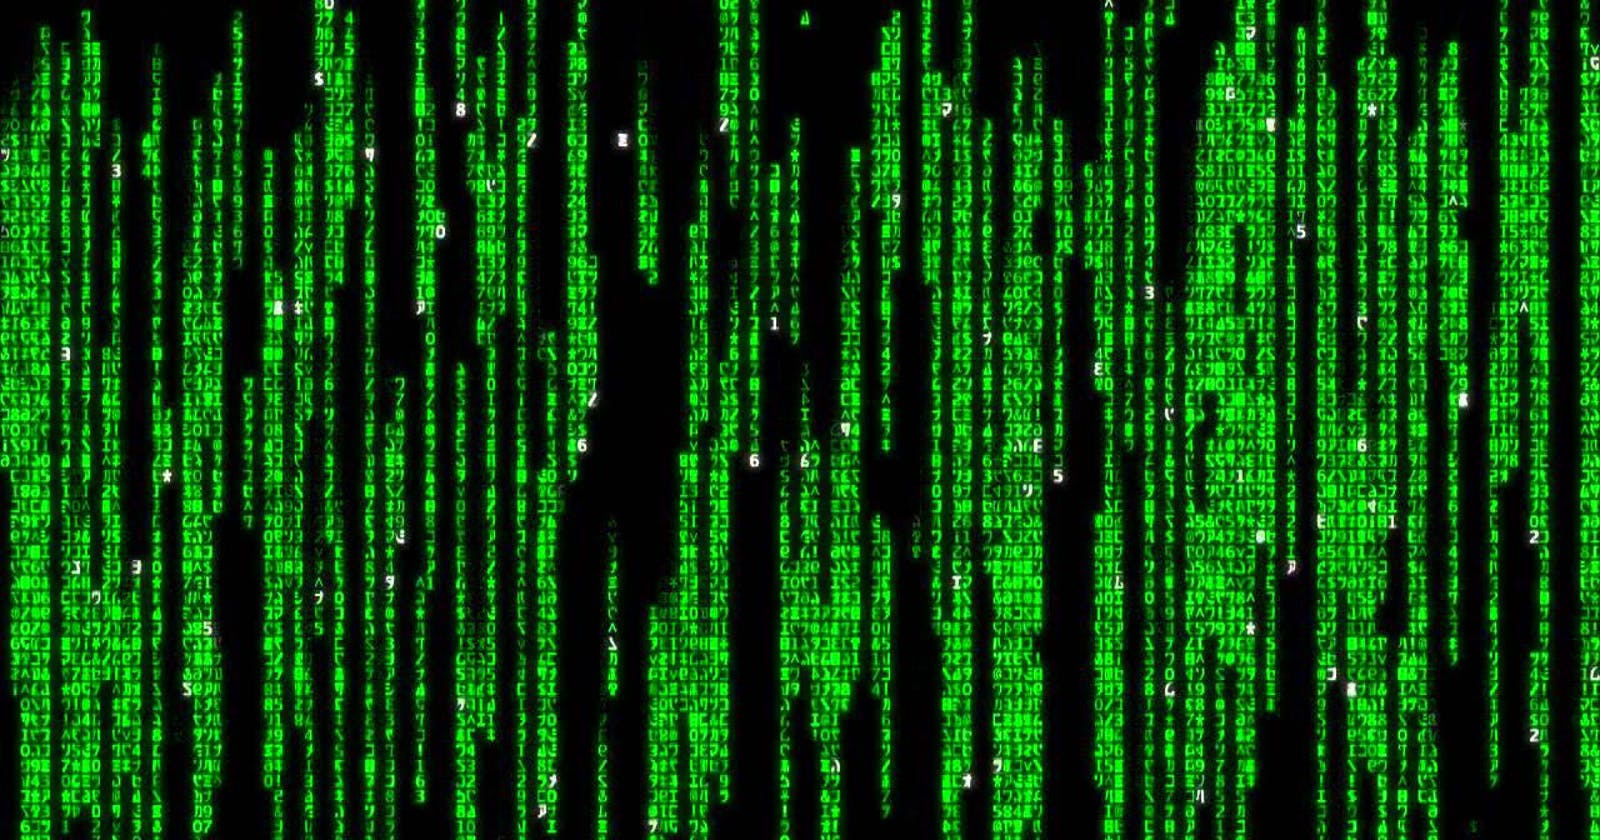 Intelligence Explosion: possibility that future of computing holds